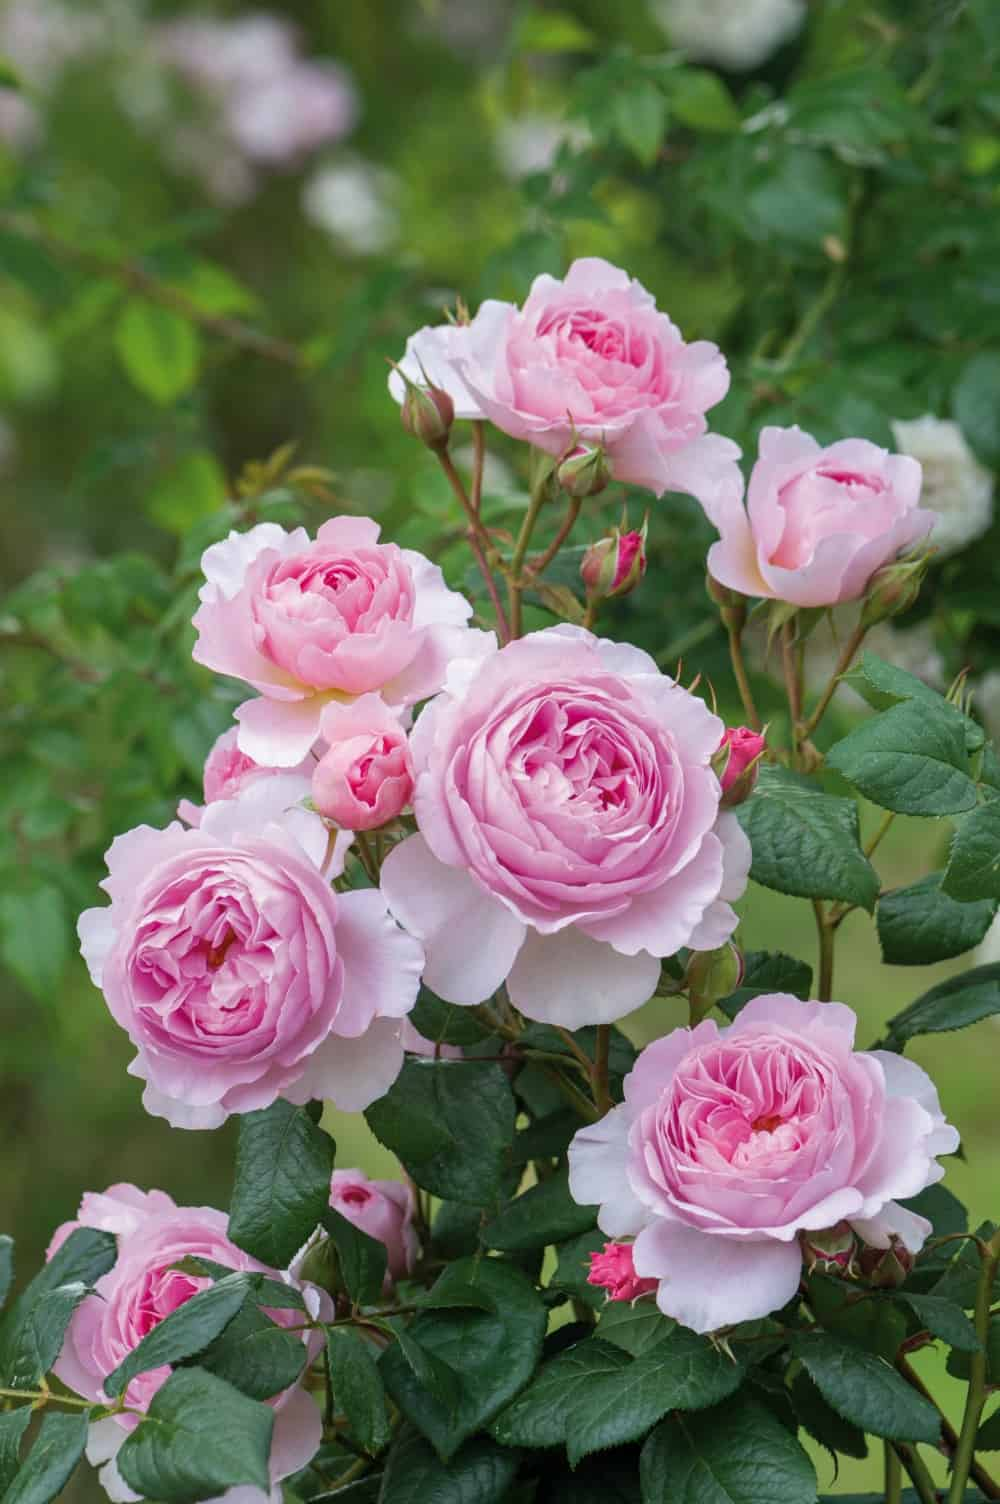 new david austin english roses for 2017: ready for their close-ups